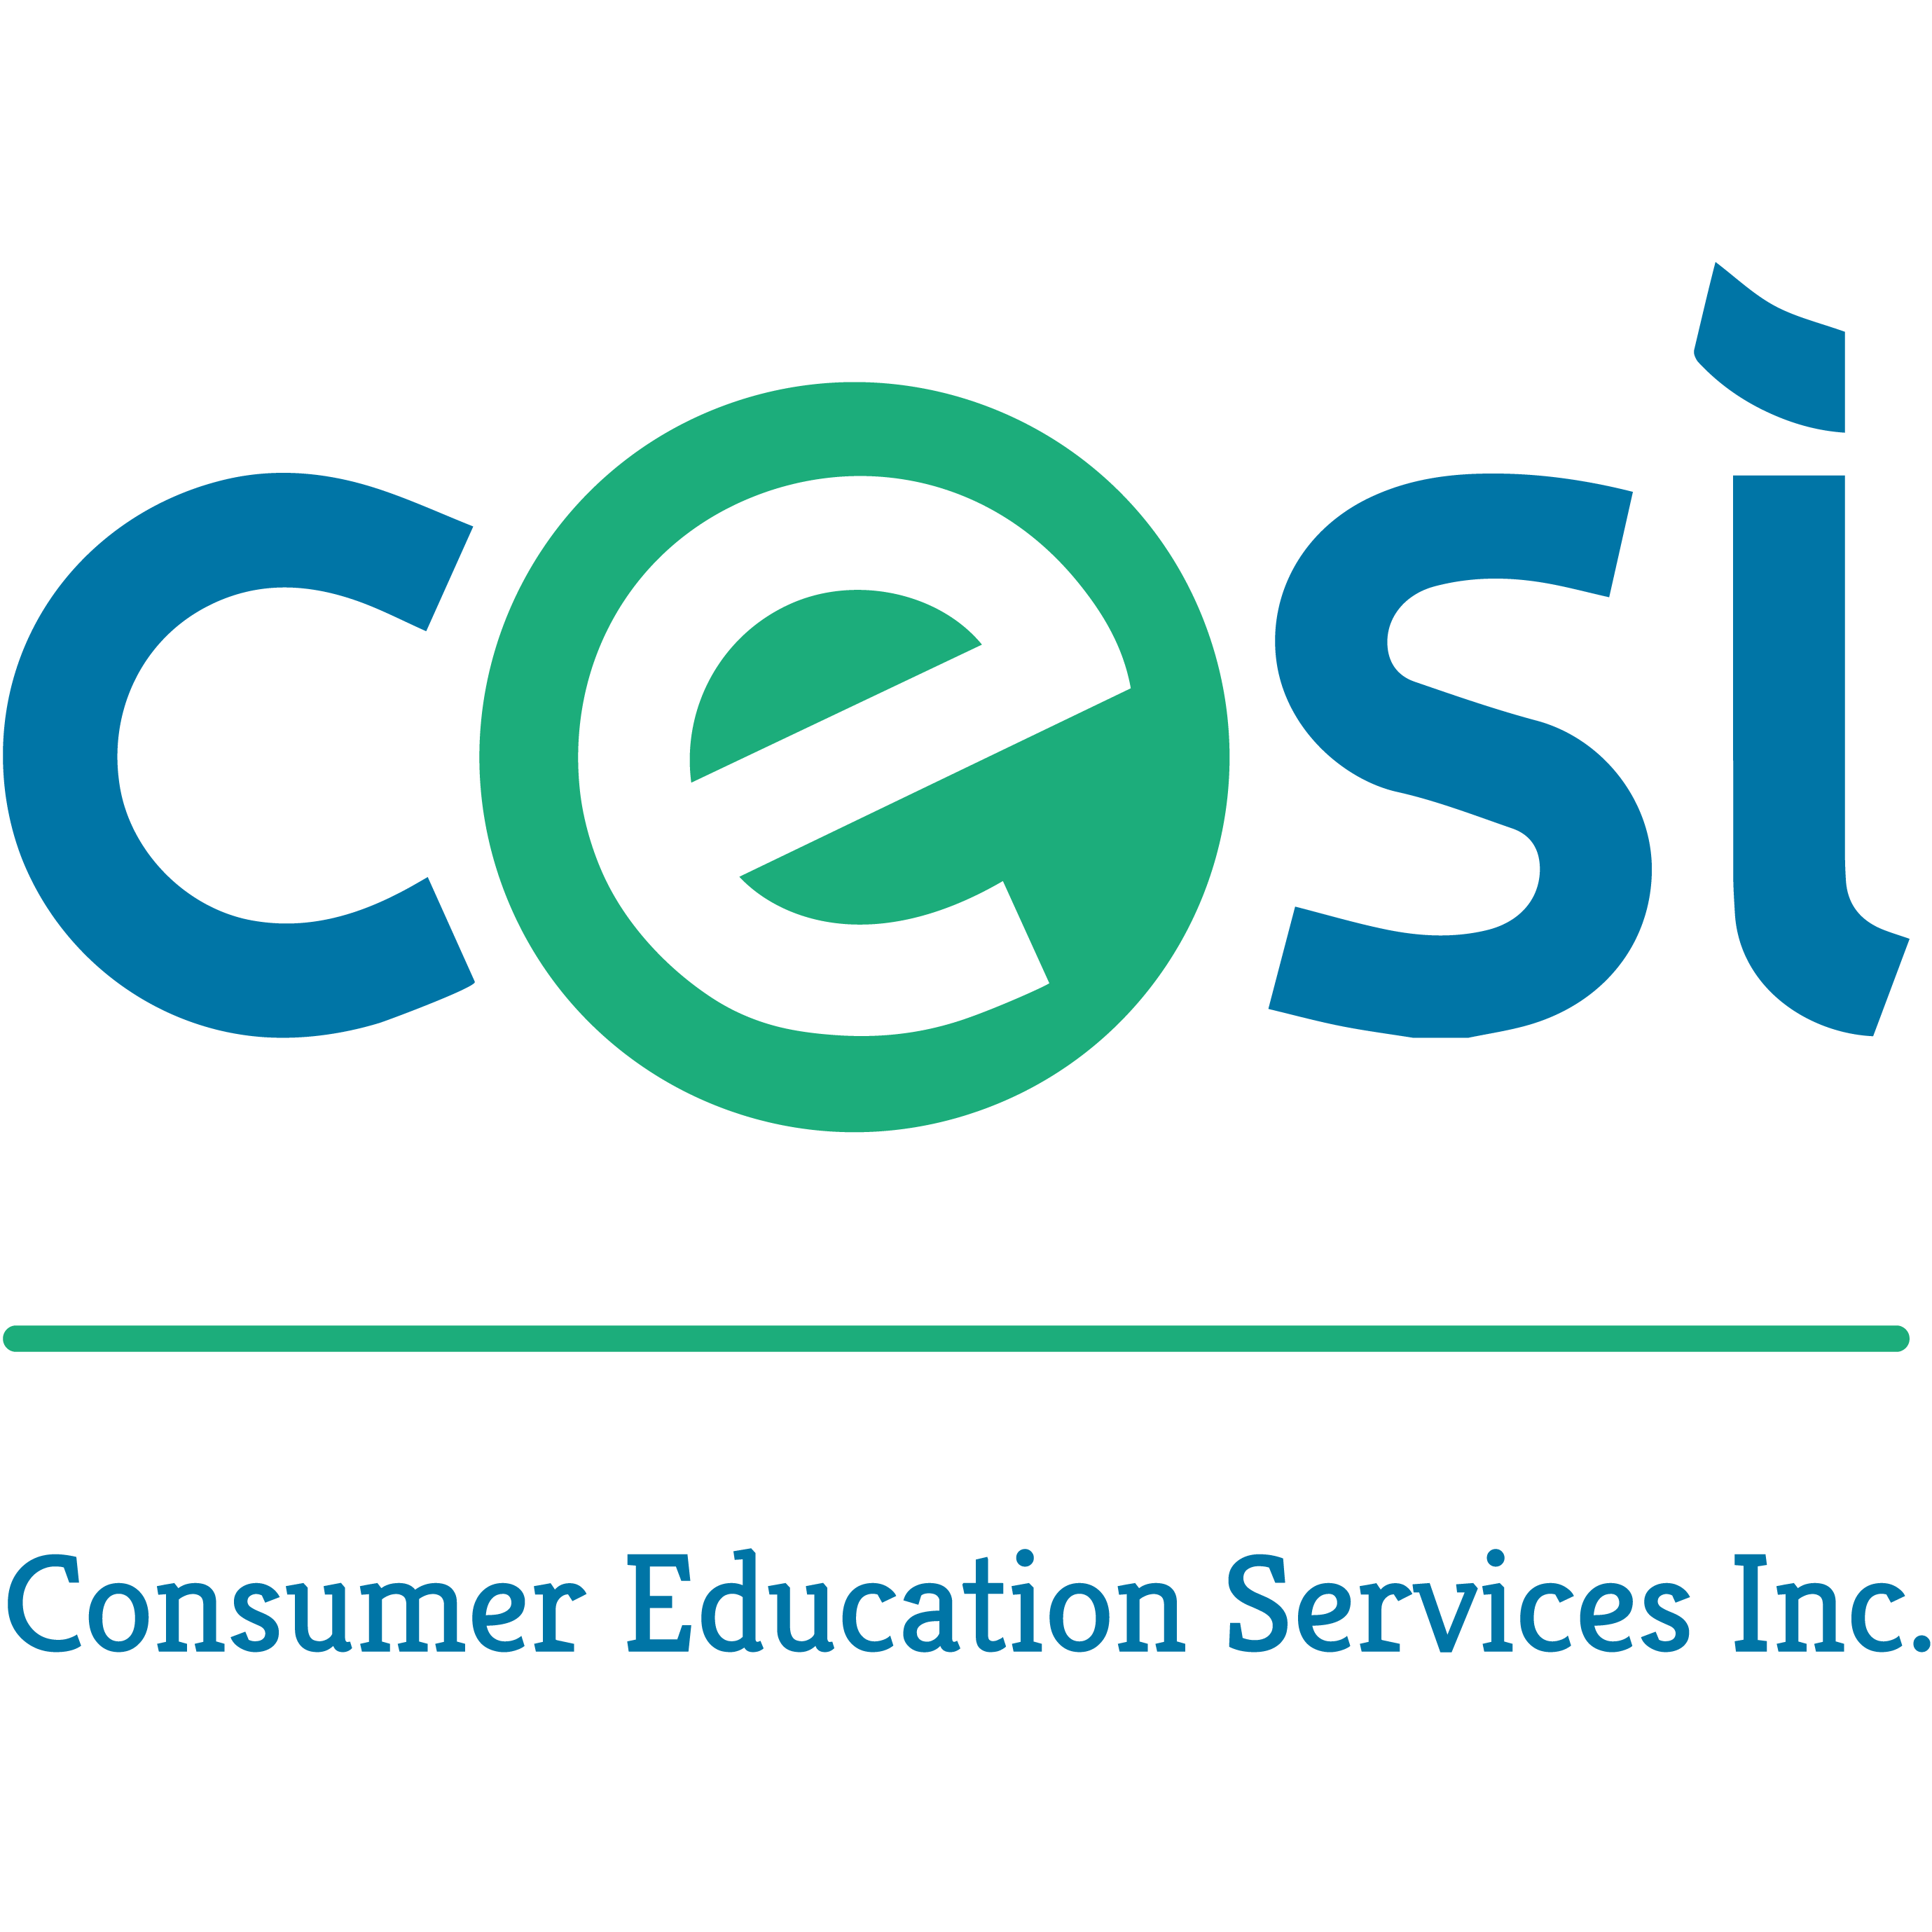 Consumer Education Services Inc. (CESI) - Raleigh, NC - Debt Counseling Services